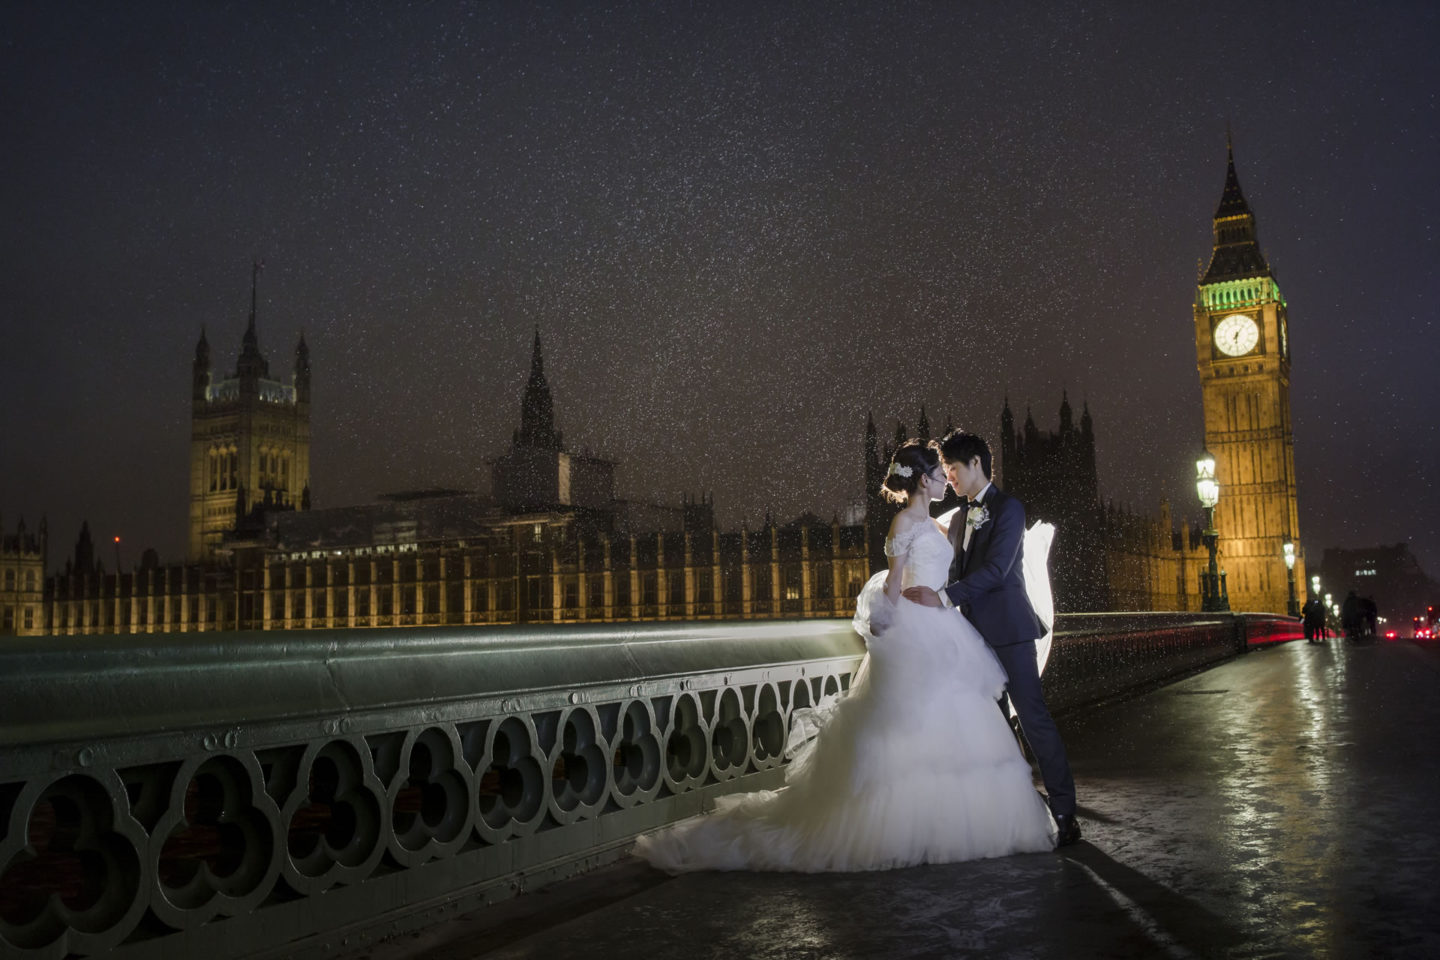 London By Night :: Bride and groom. Couple :: David Bastianoni wedding photographer